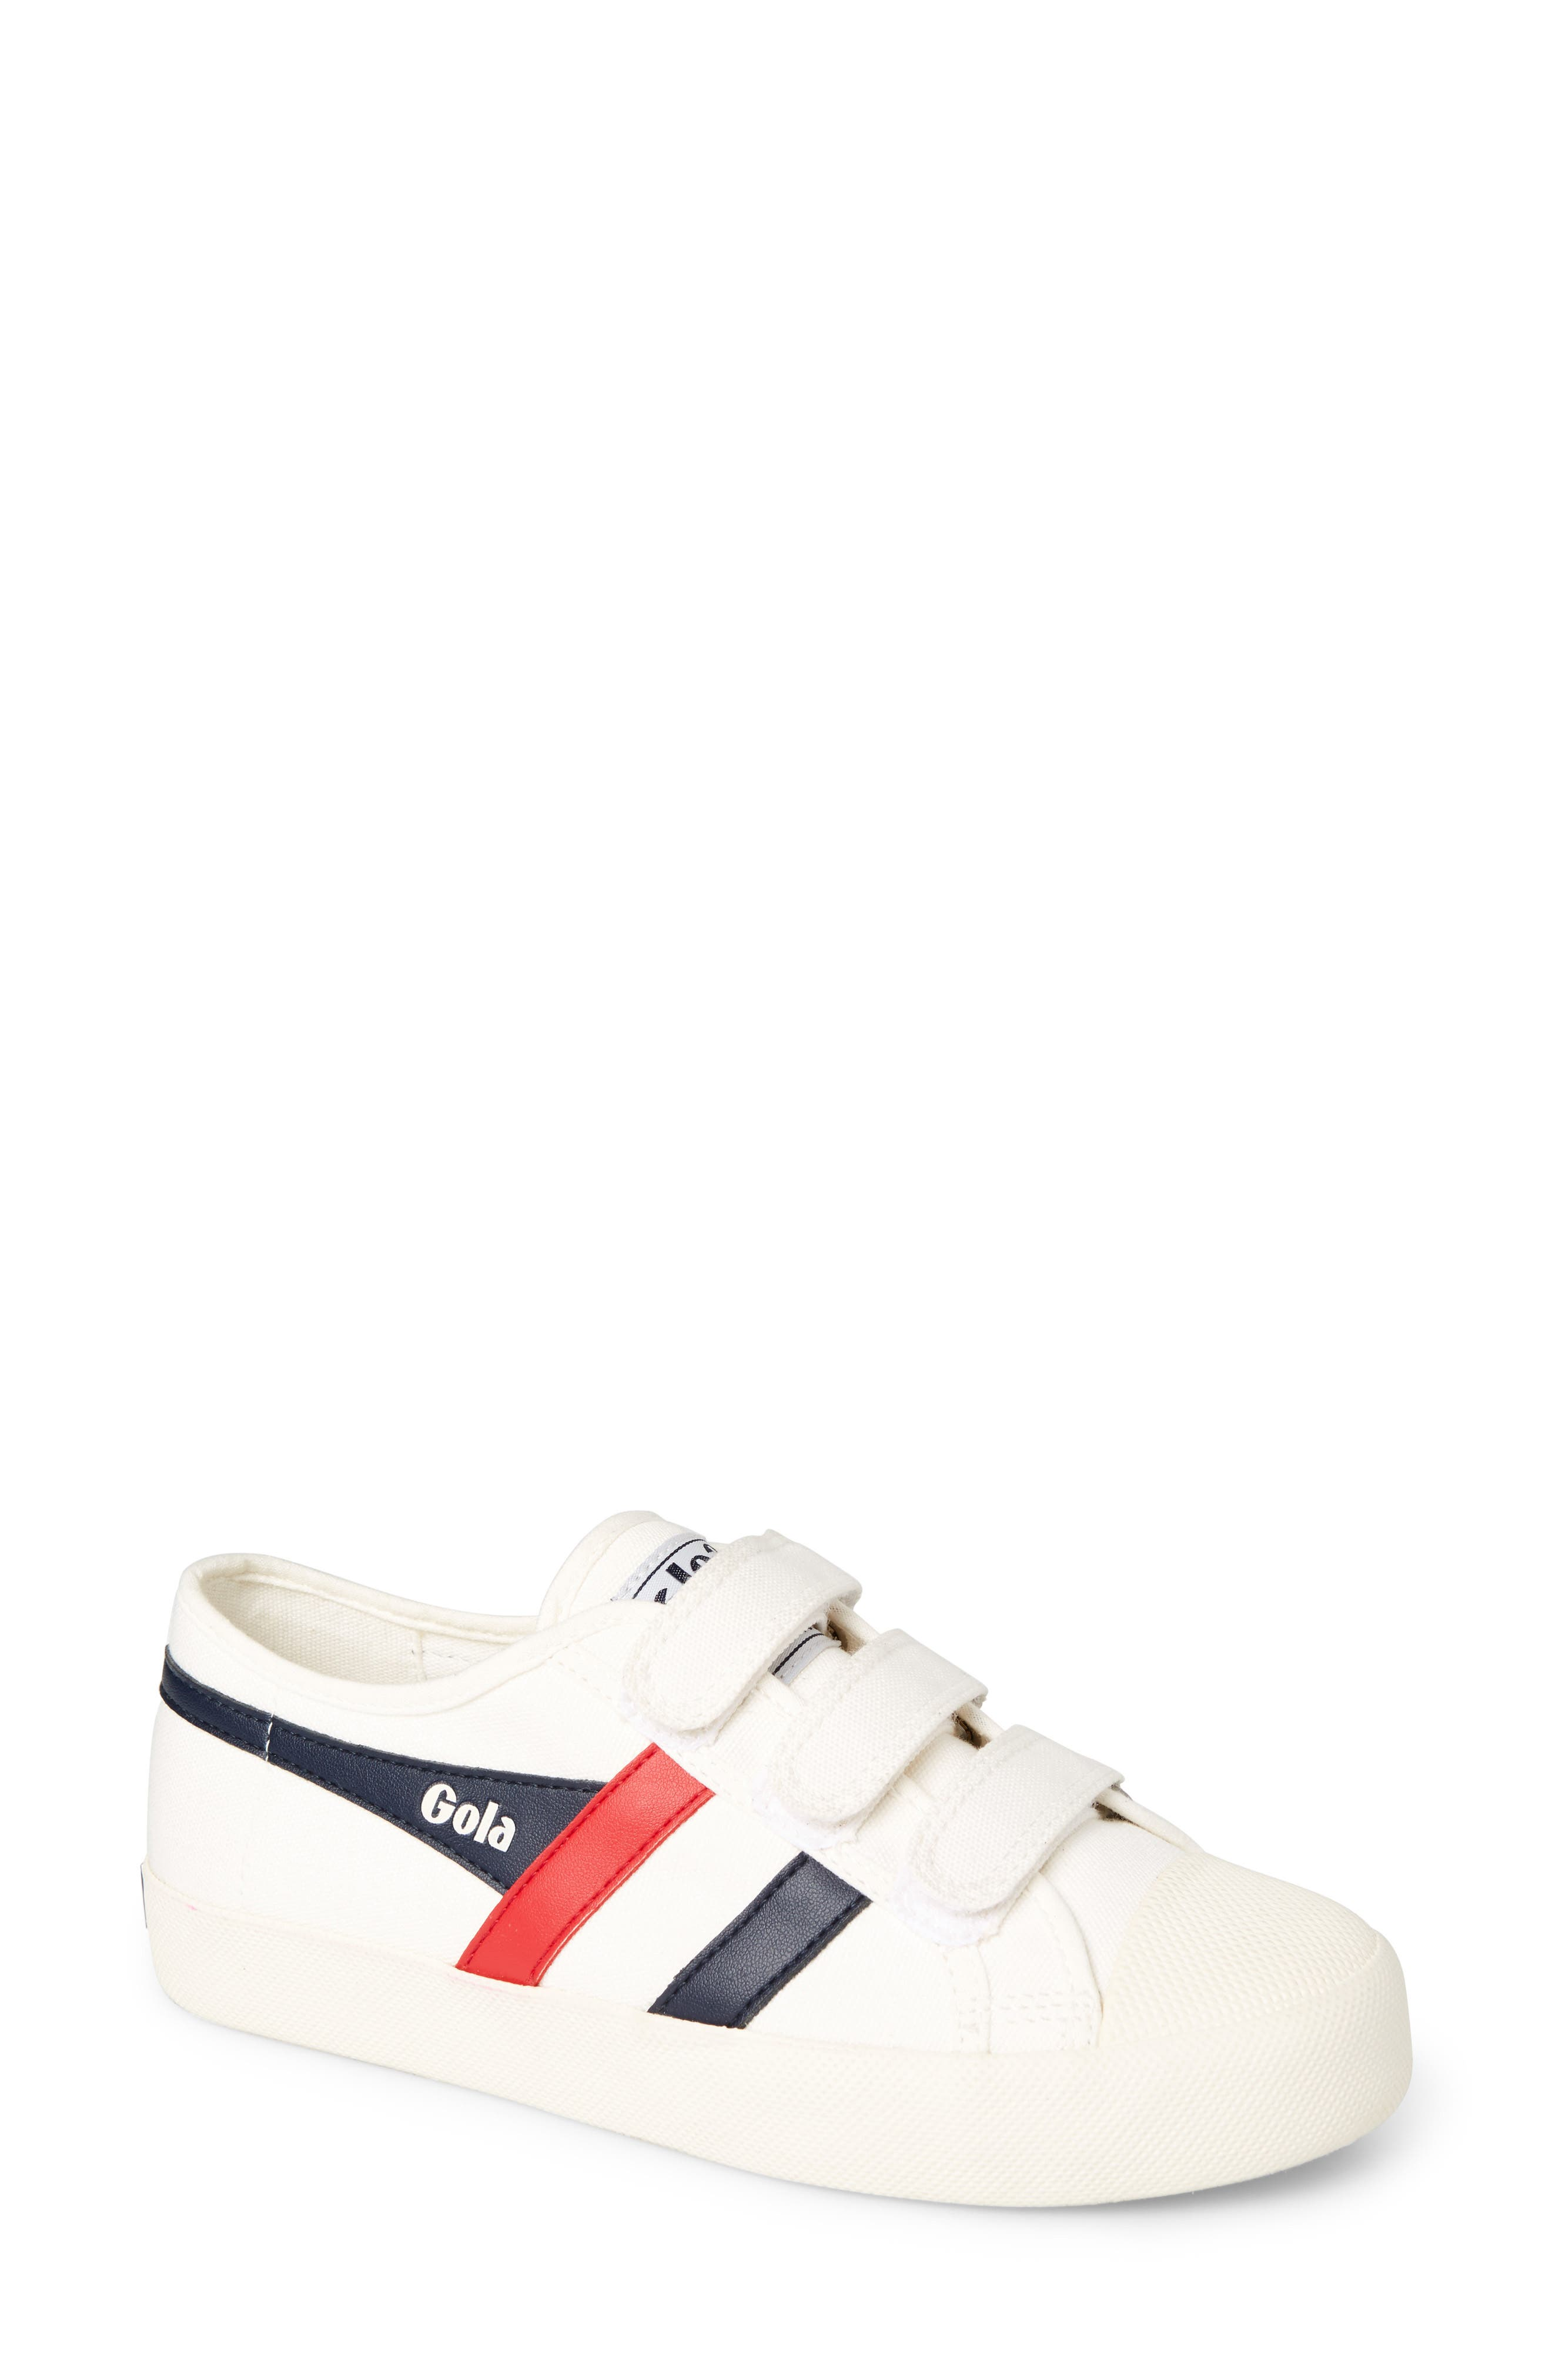 Coaster Low Top Sneaker,                             Main thumbnail 1, color,                             OFF WHITE/ NAVY/ RED